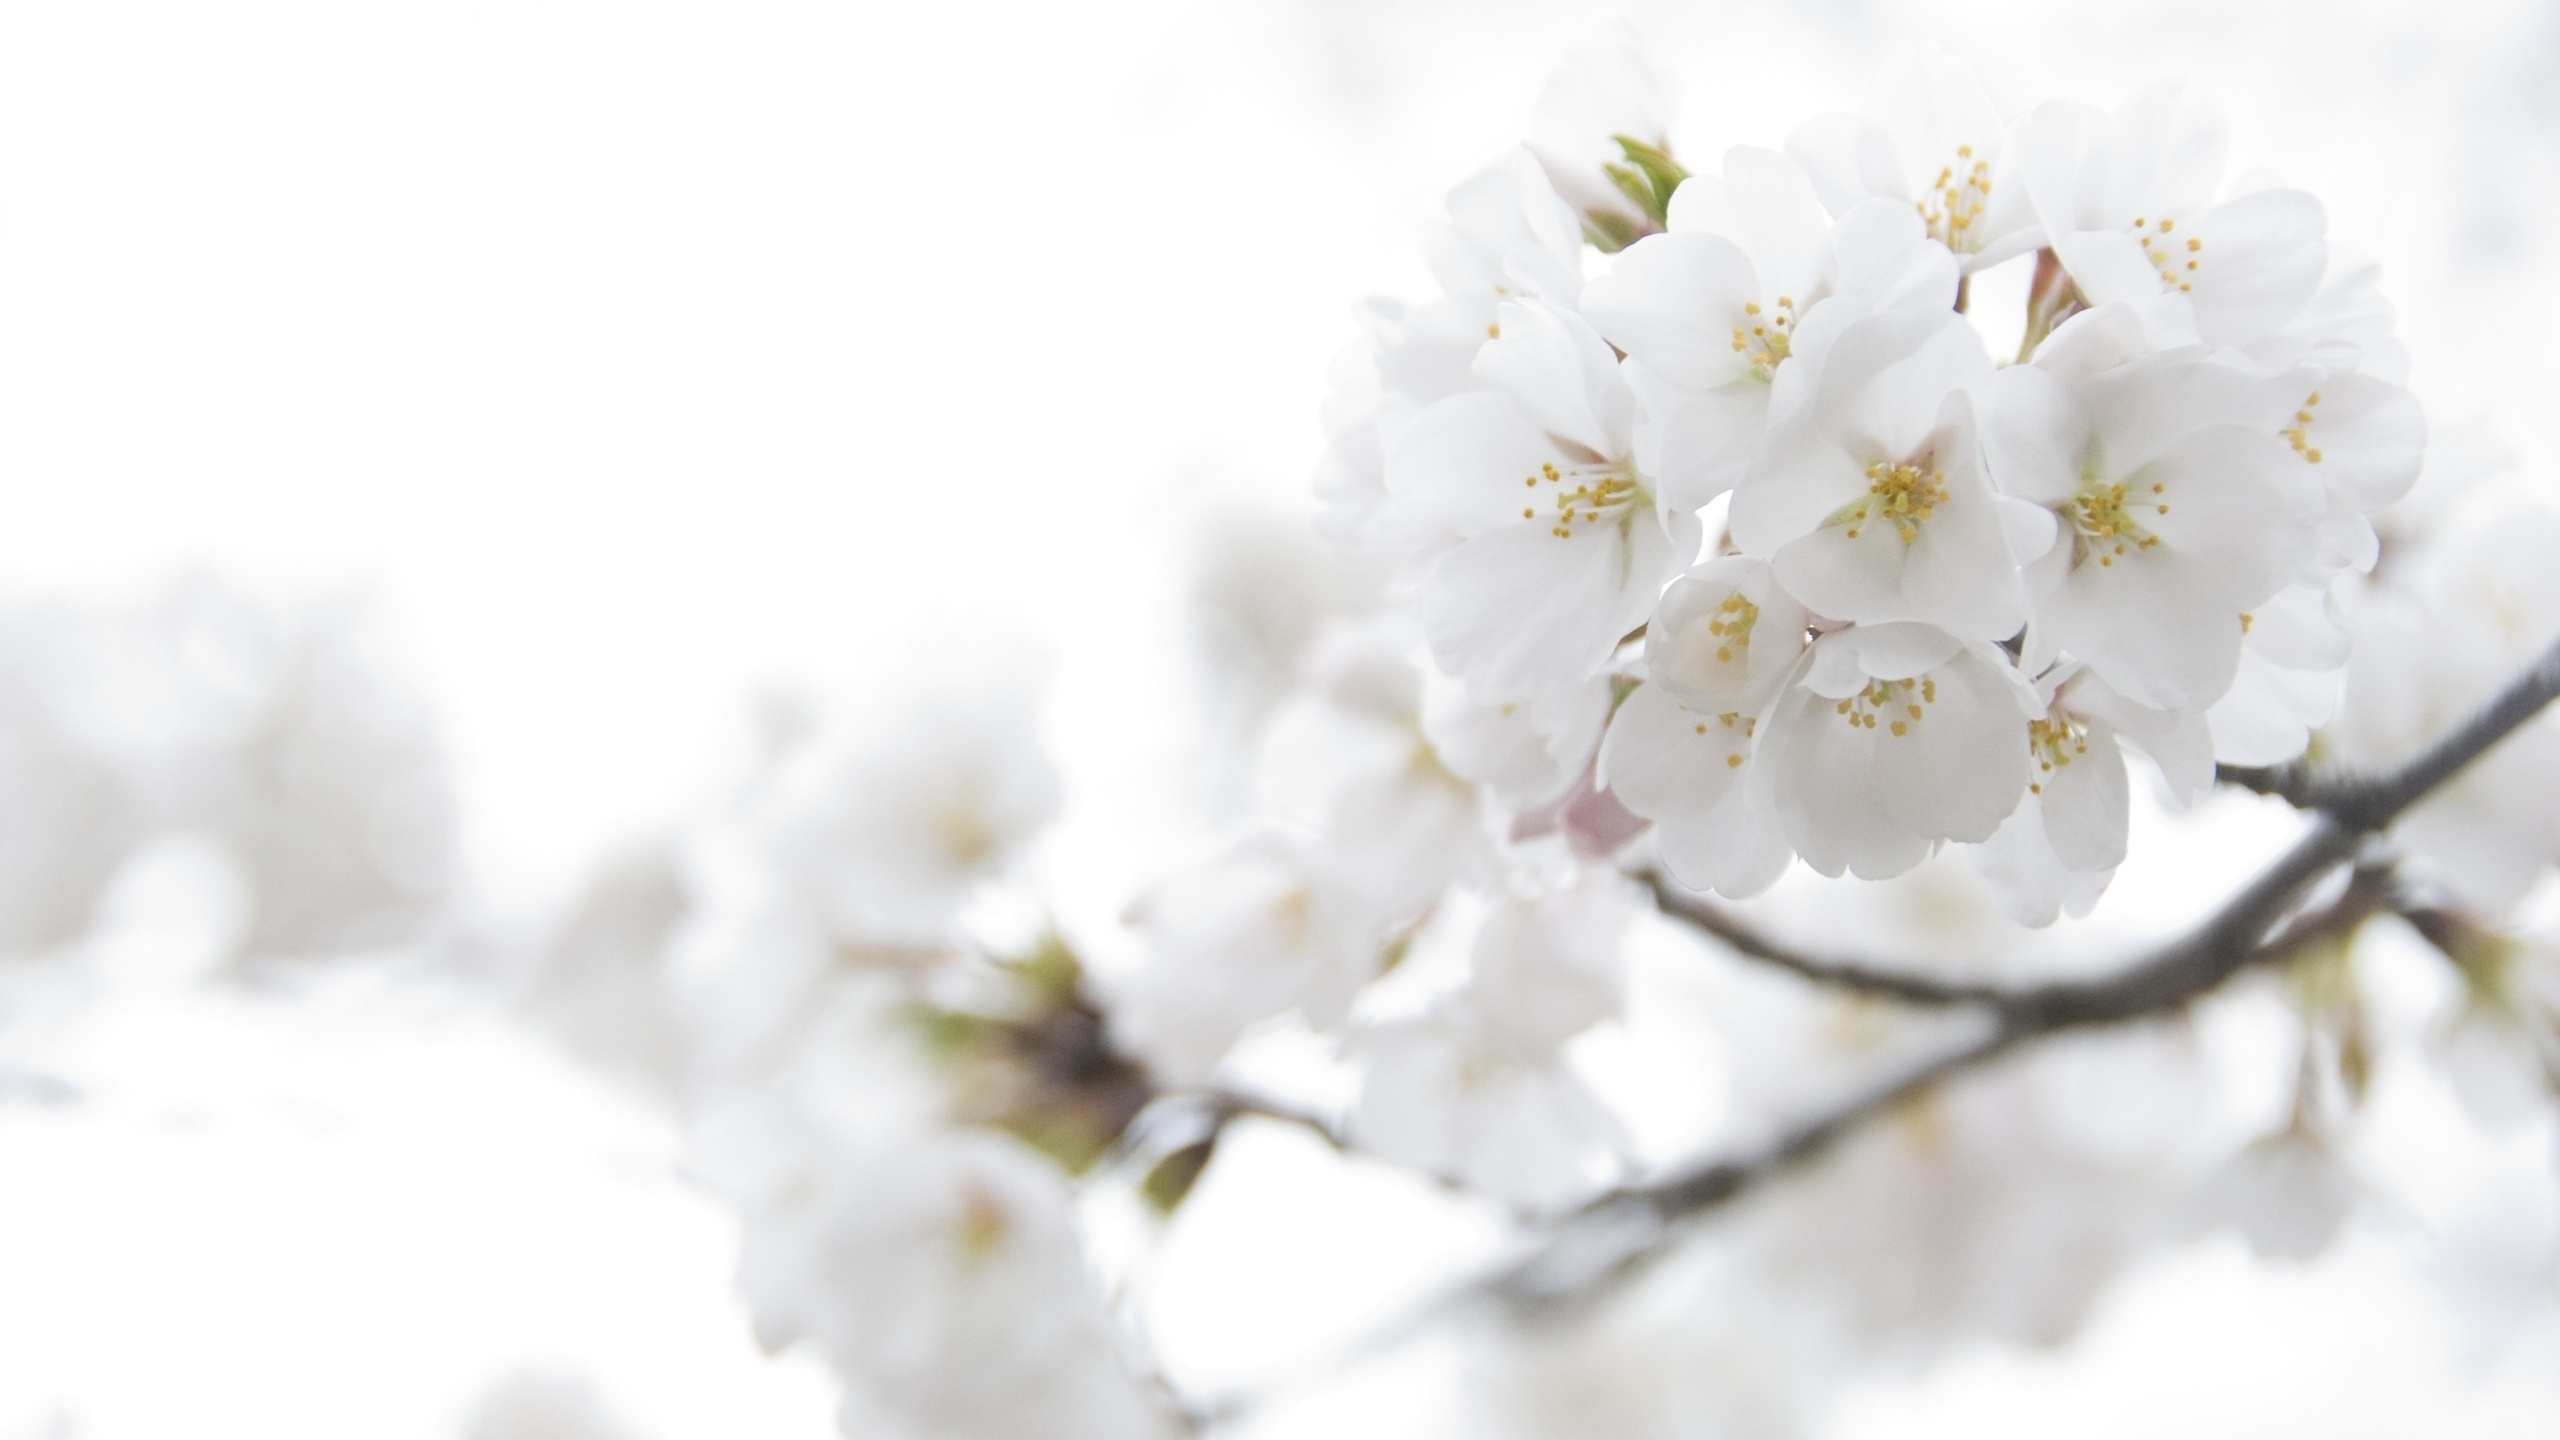 Spring White Flowers Wallpaper High Definition High Quality